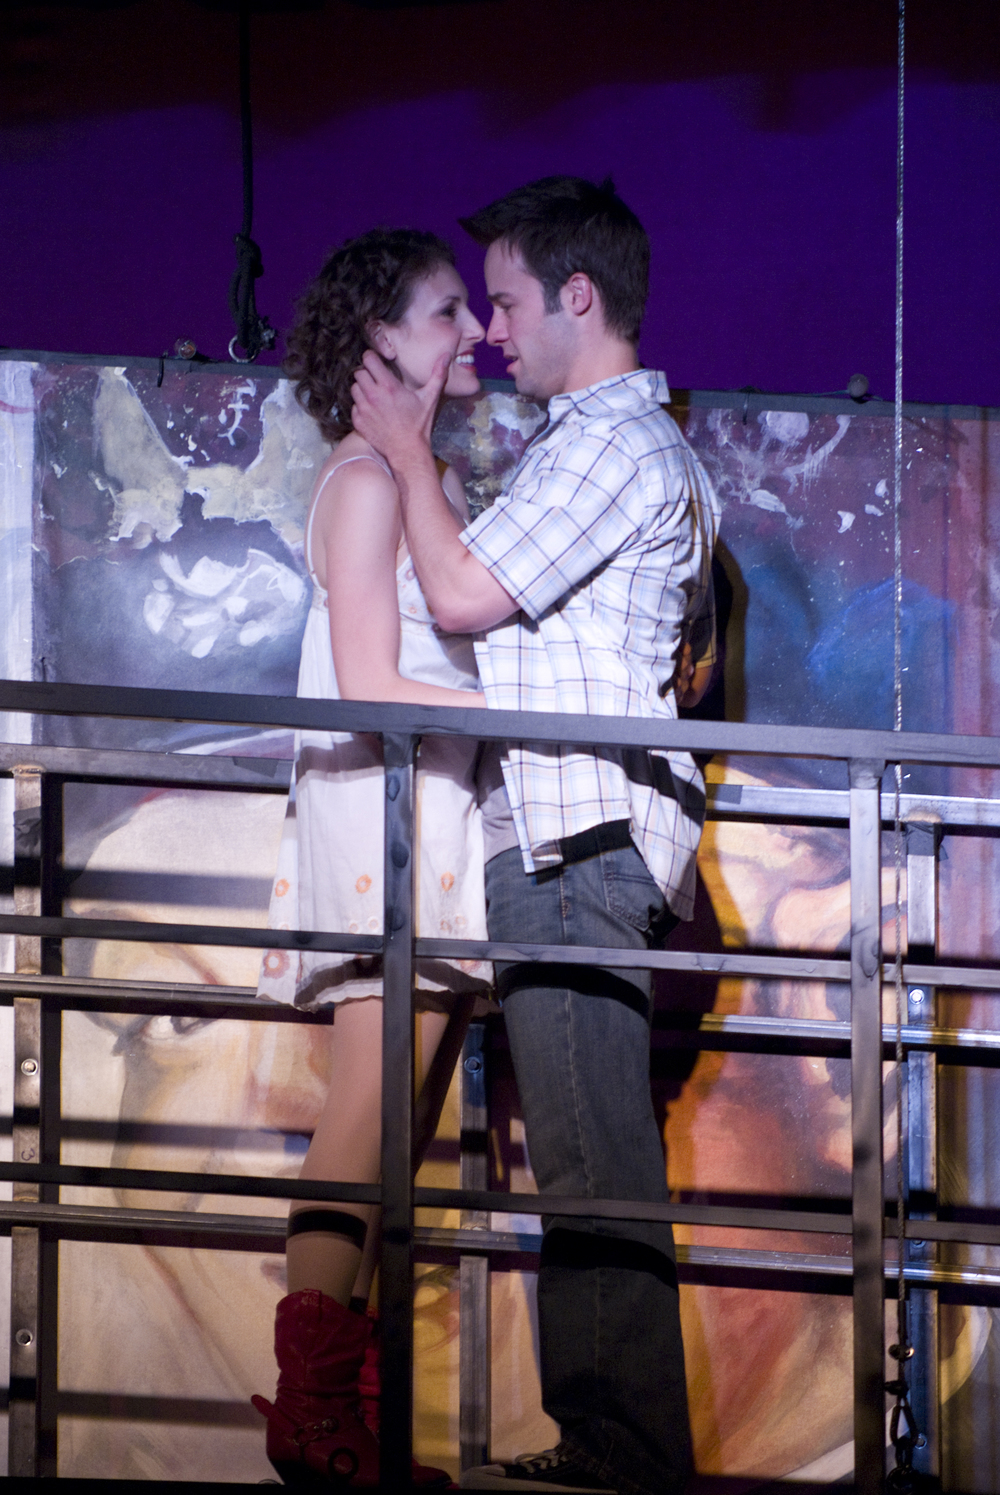 ariel-in-footloose-with-matt-raftery_4509571137_o.jpg